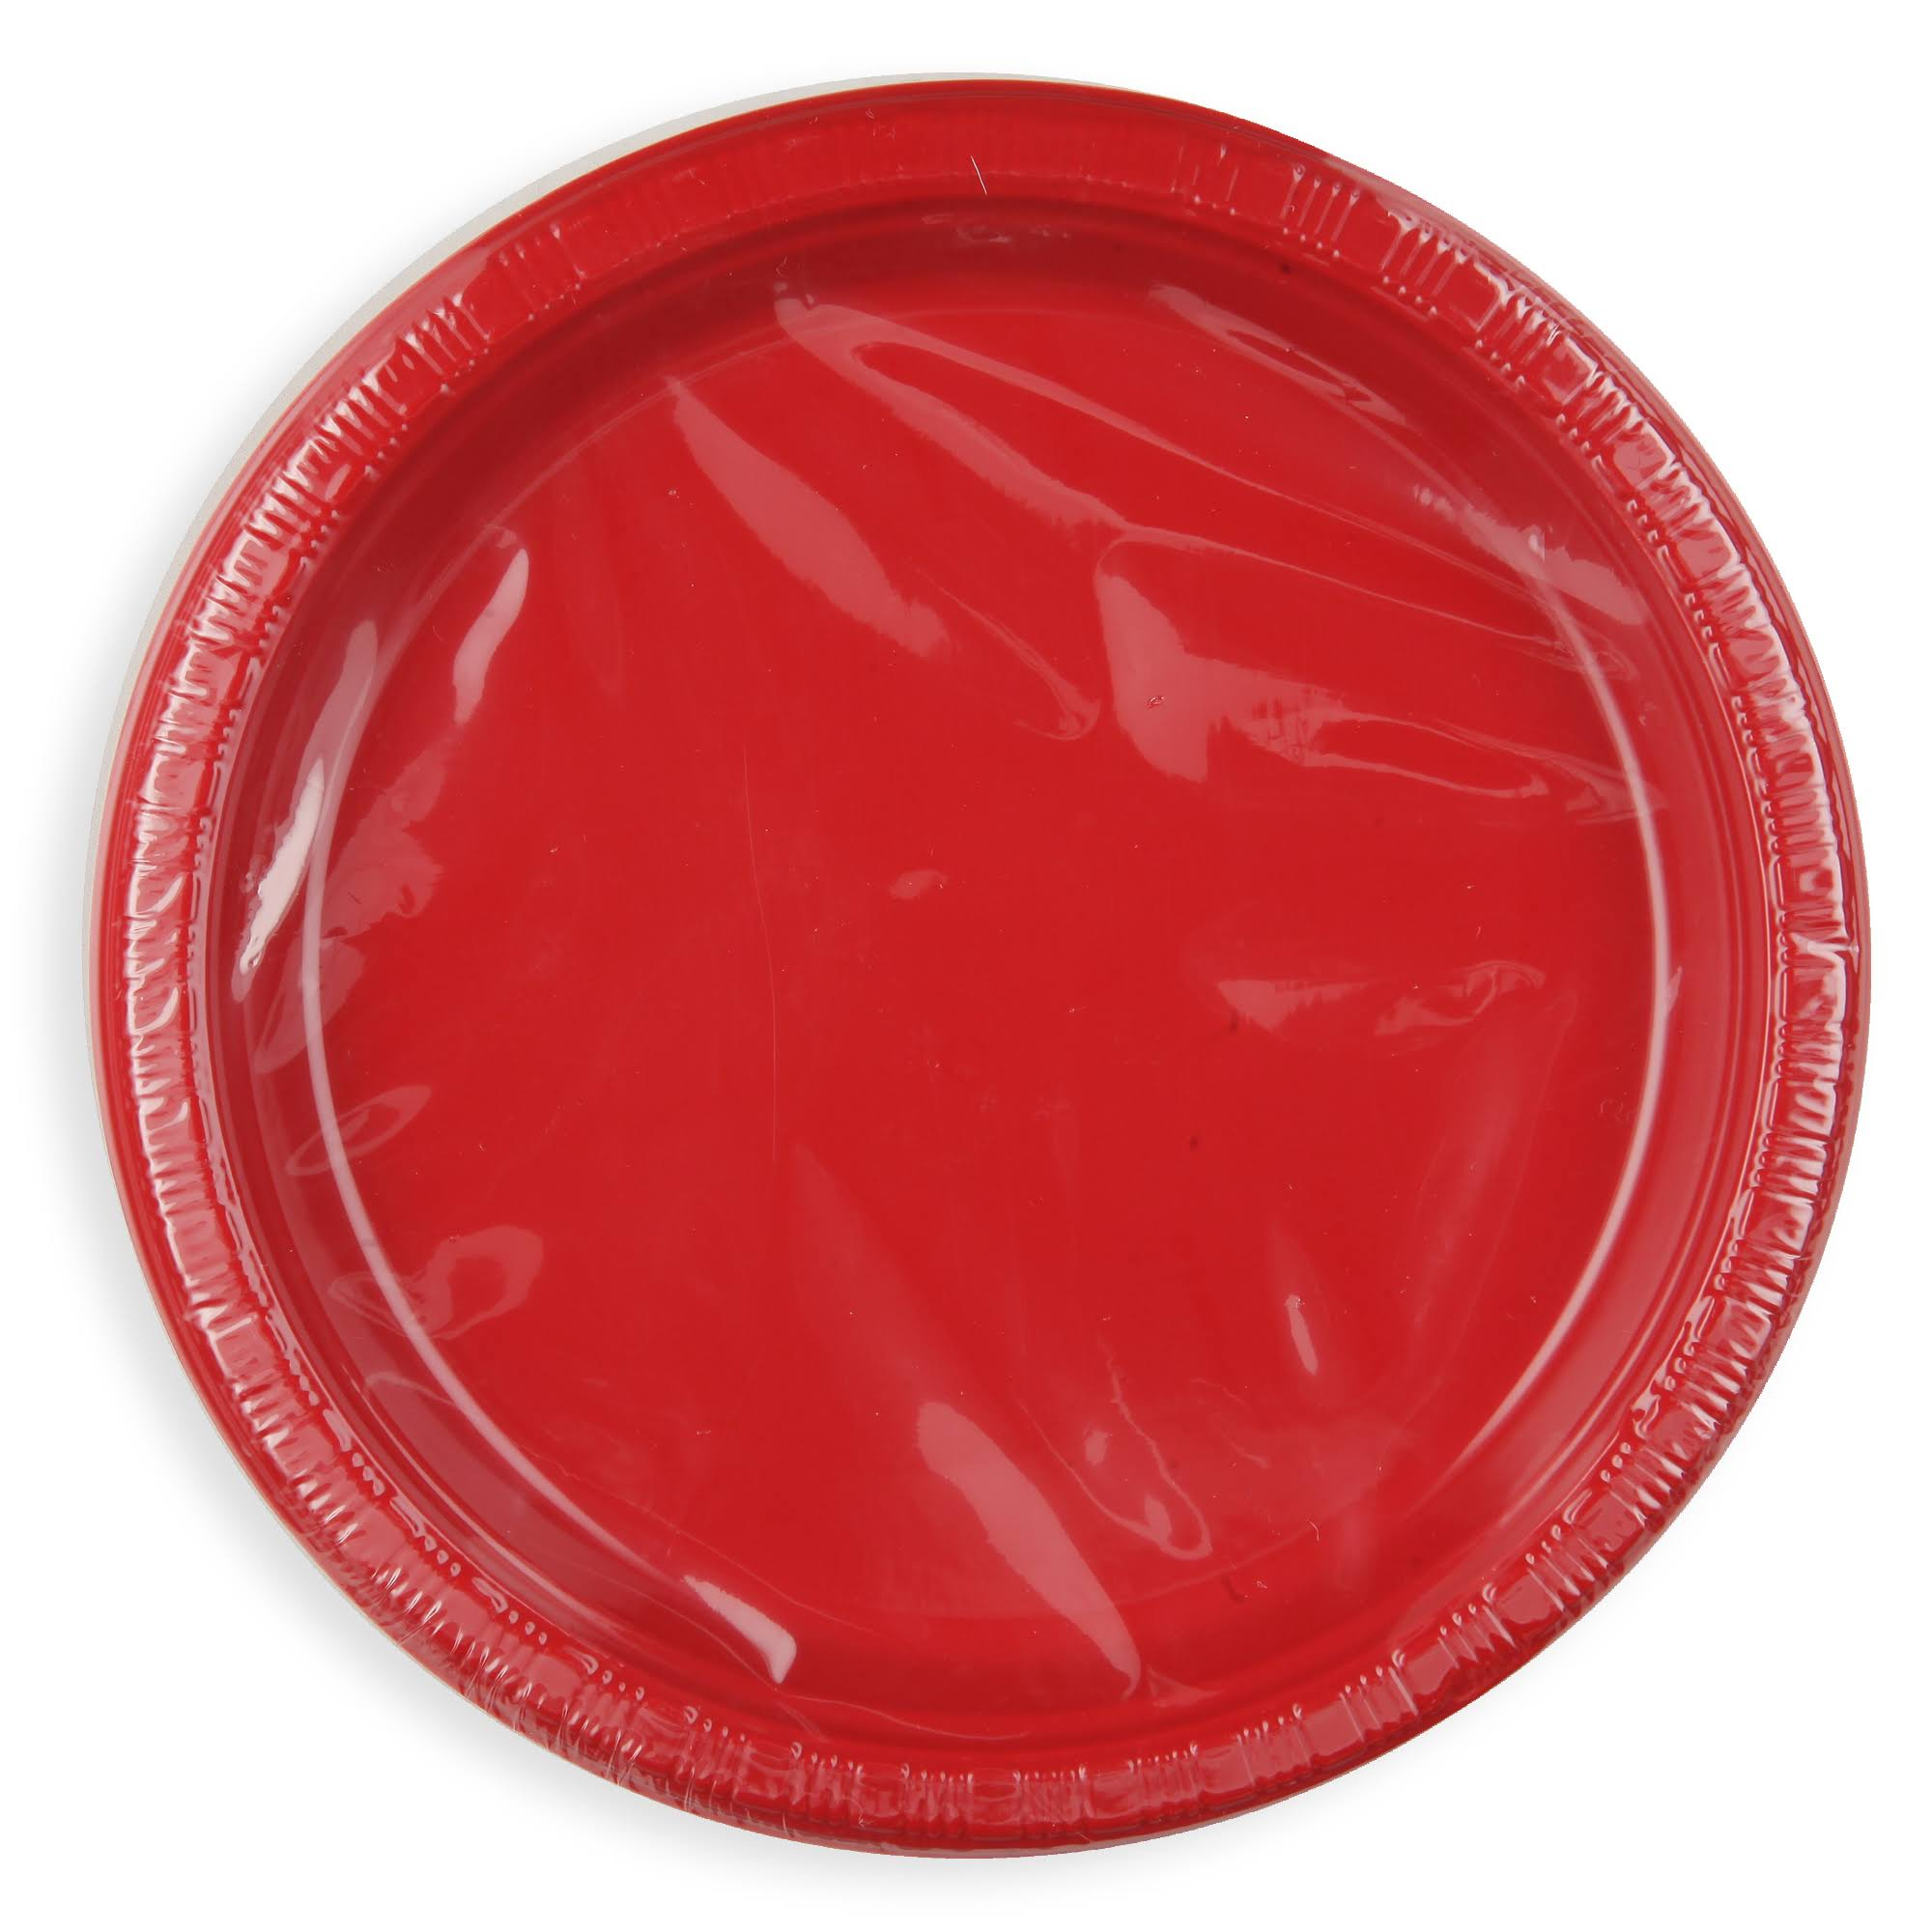 Creative Converting 28103111 Luncheon Plate - Classic Red, Plastic, 20ct